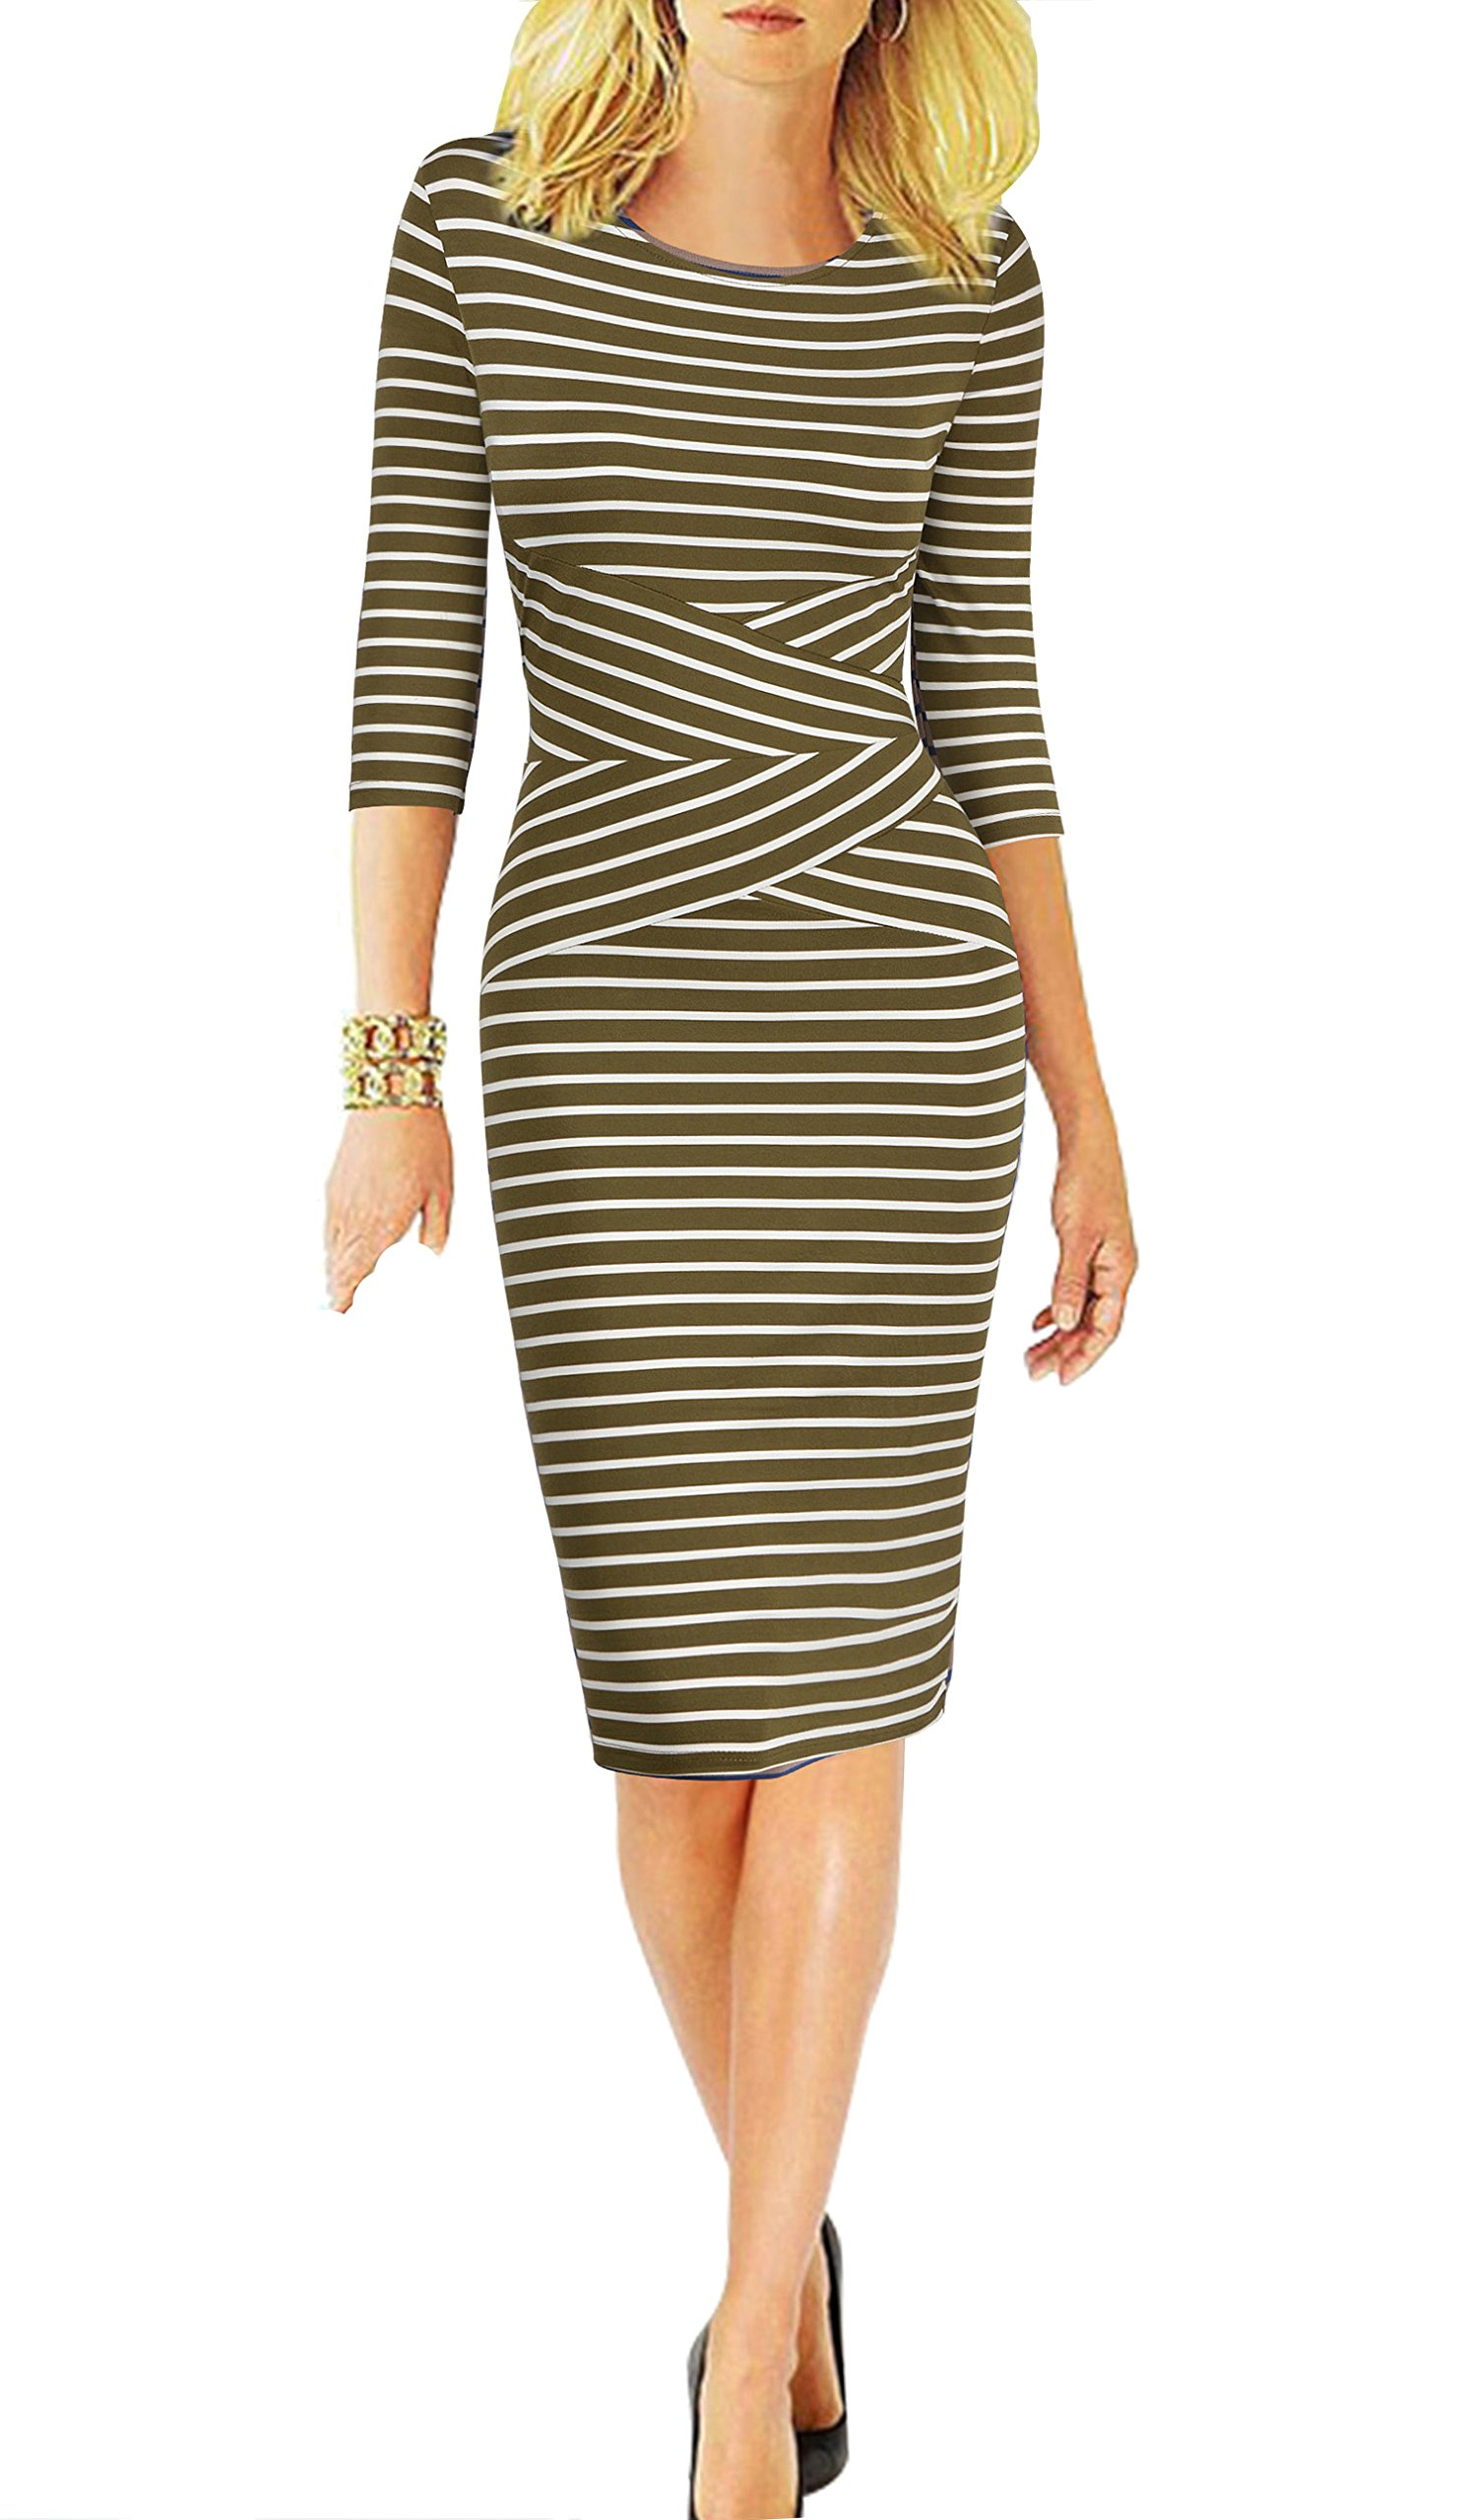 REPHYLLIS Women 3/4 Sleeve Striped Wear to Work Business Cocktail Pencil Dress (Small, Armygreen) by REPHYLLIS®